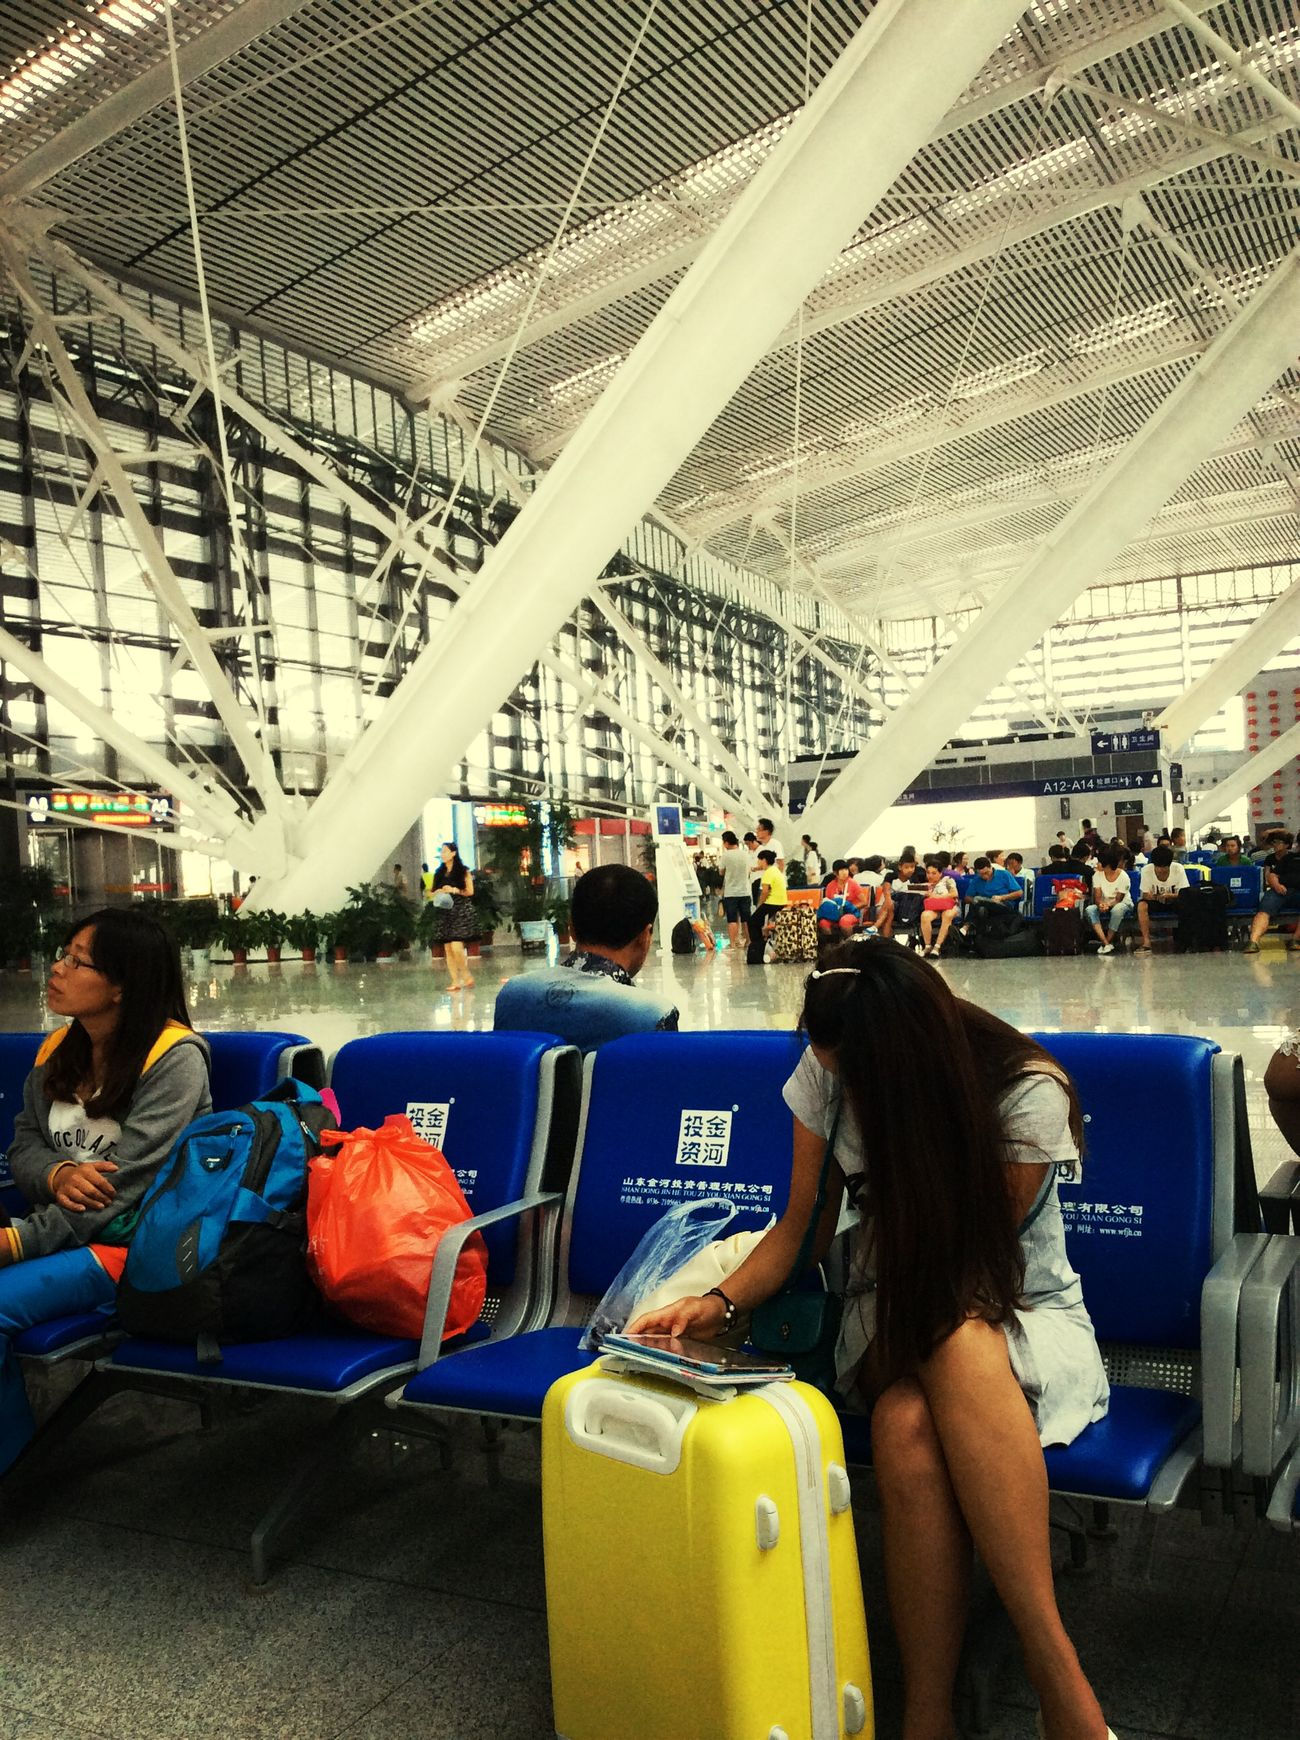 The first trip to beautiful T.Y.I can't wait it to start! Wonderful Qingdao North Station! Wonderful Trip Alone!